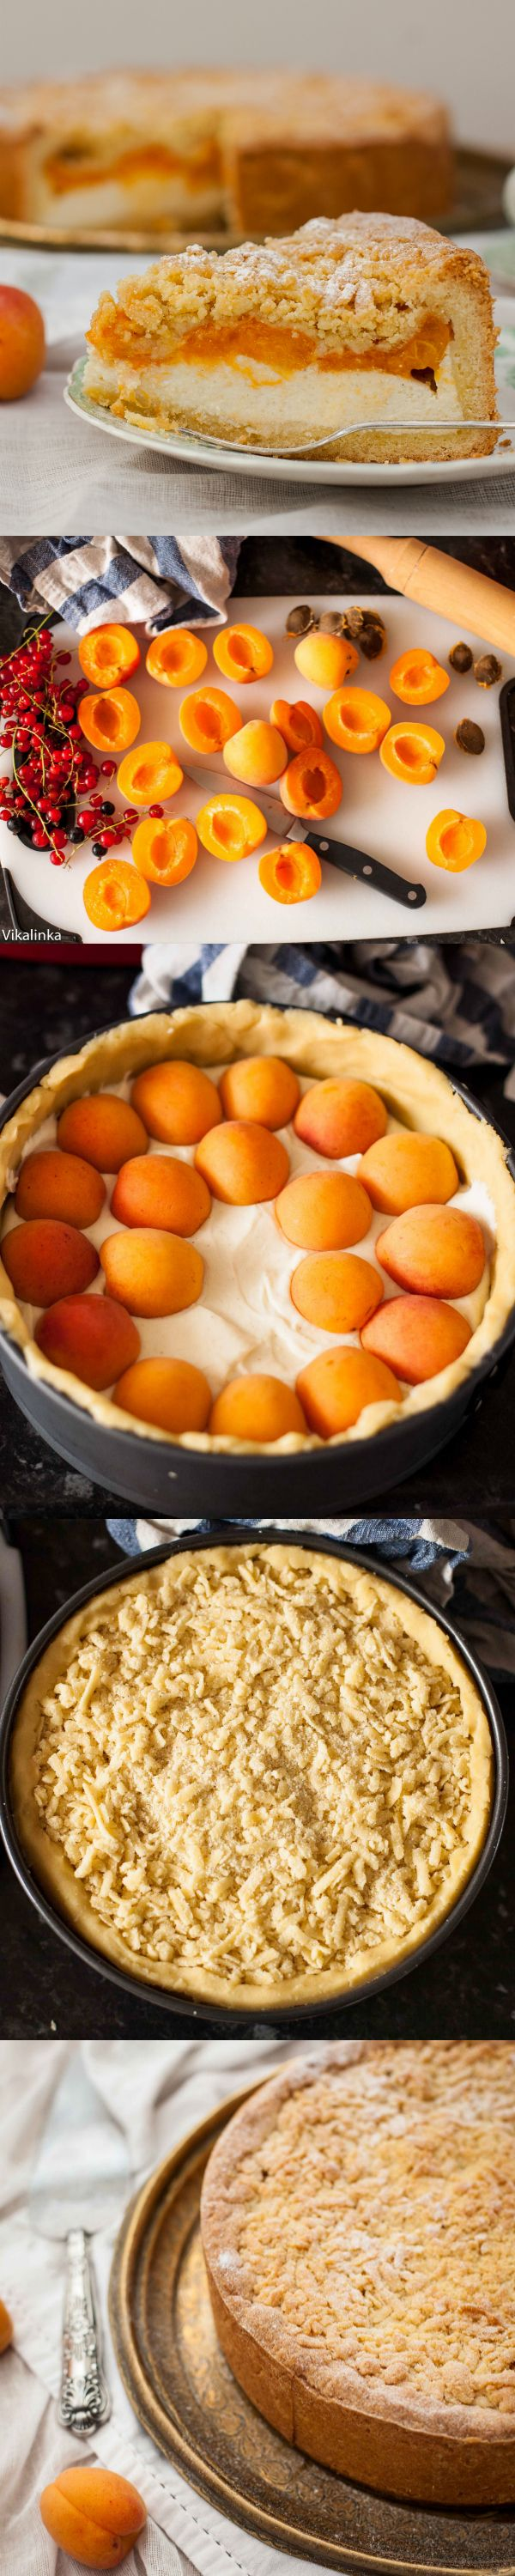 LOVE cheese and apricot together. Apricot cheese Danish is one of my favorite things in life. So this seems like a very good idea. —Crumb Apricot Cheesecake by vikalinka